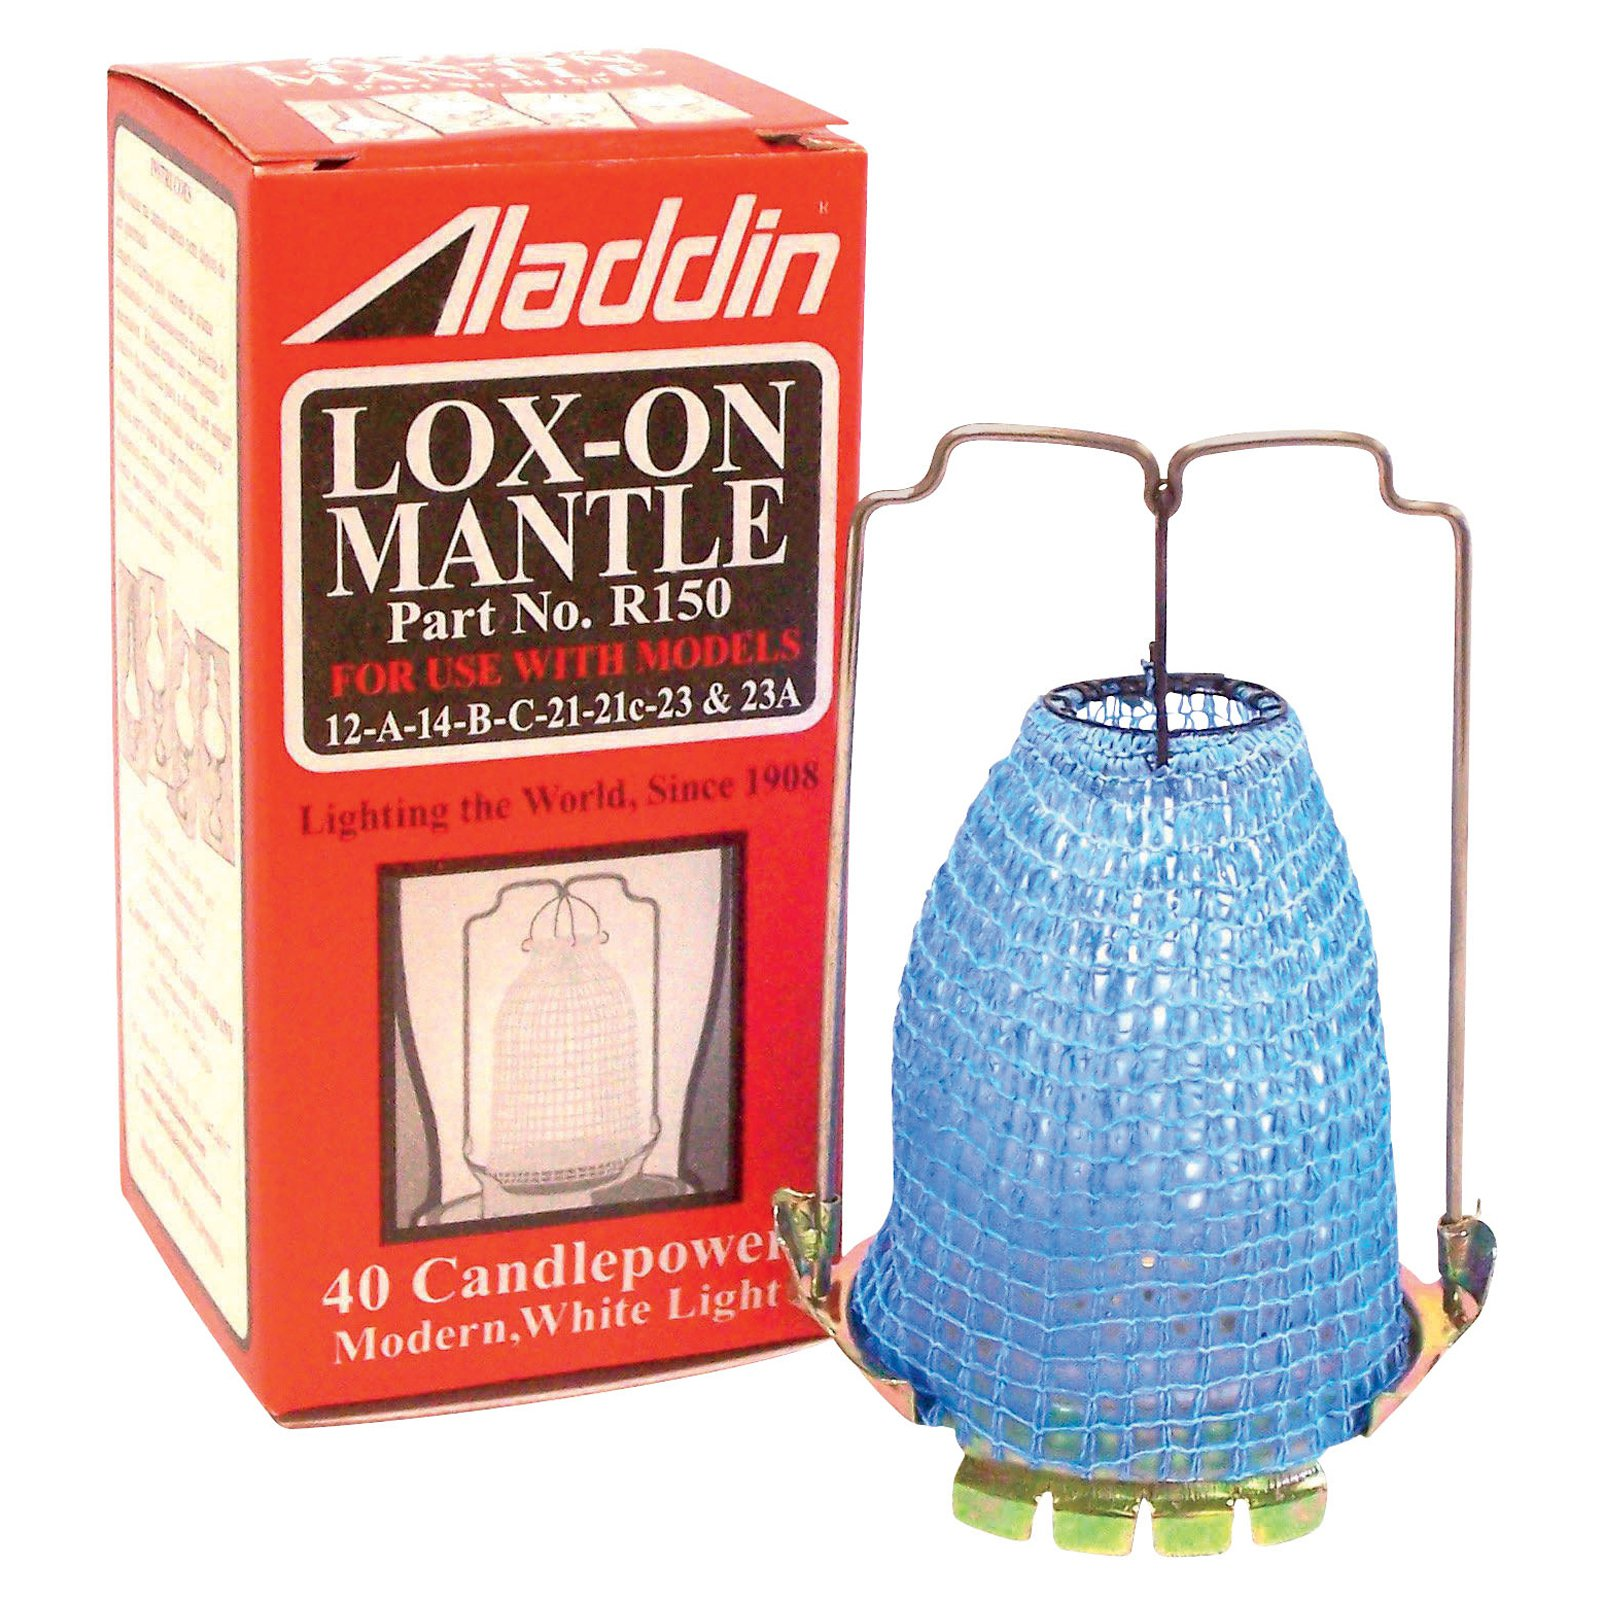 Aladdin Lamps R-150 Replacement Lox-on Gas Light Mantle